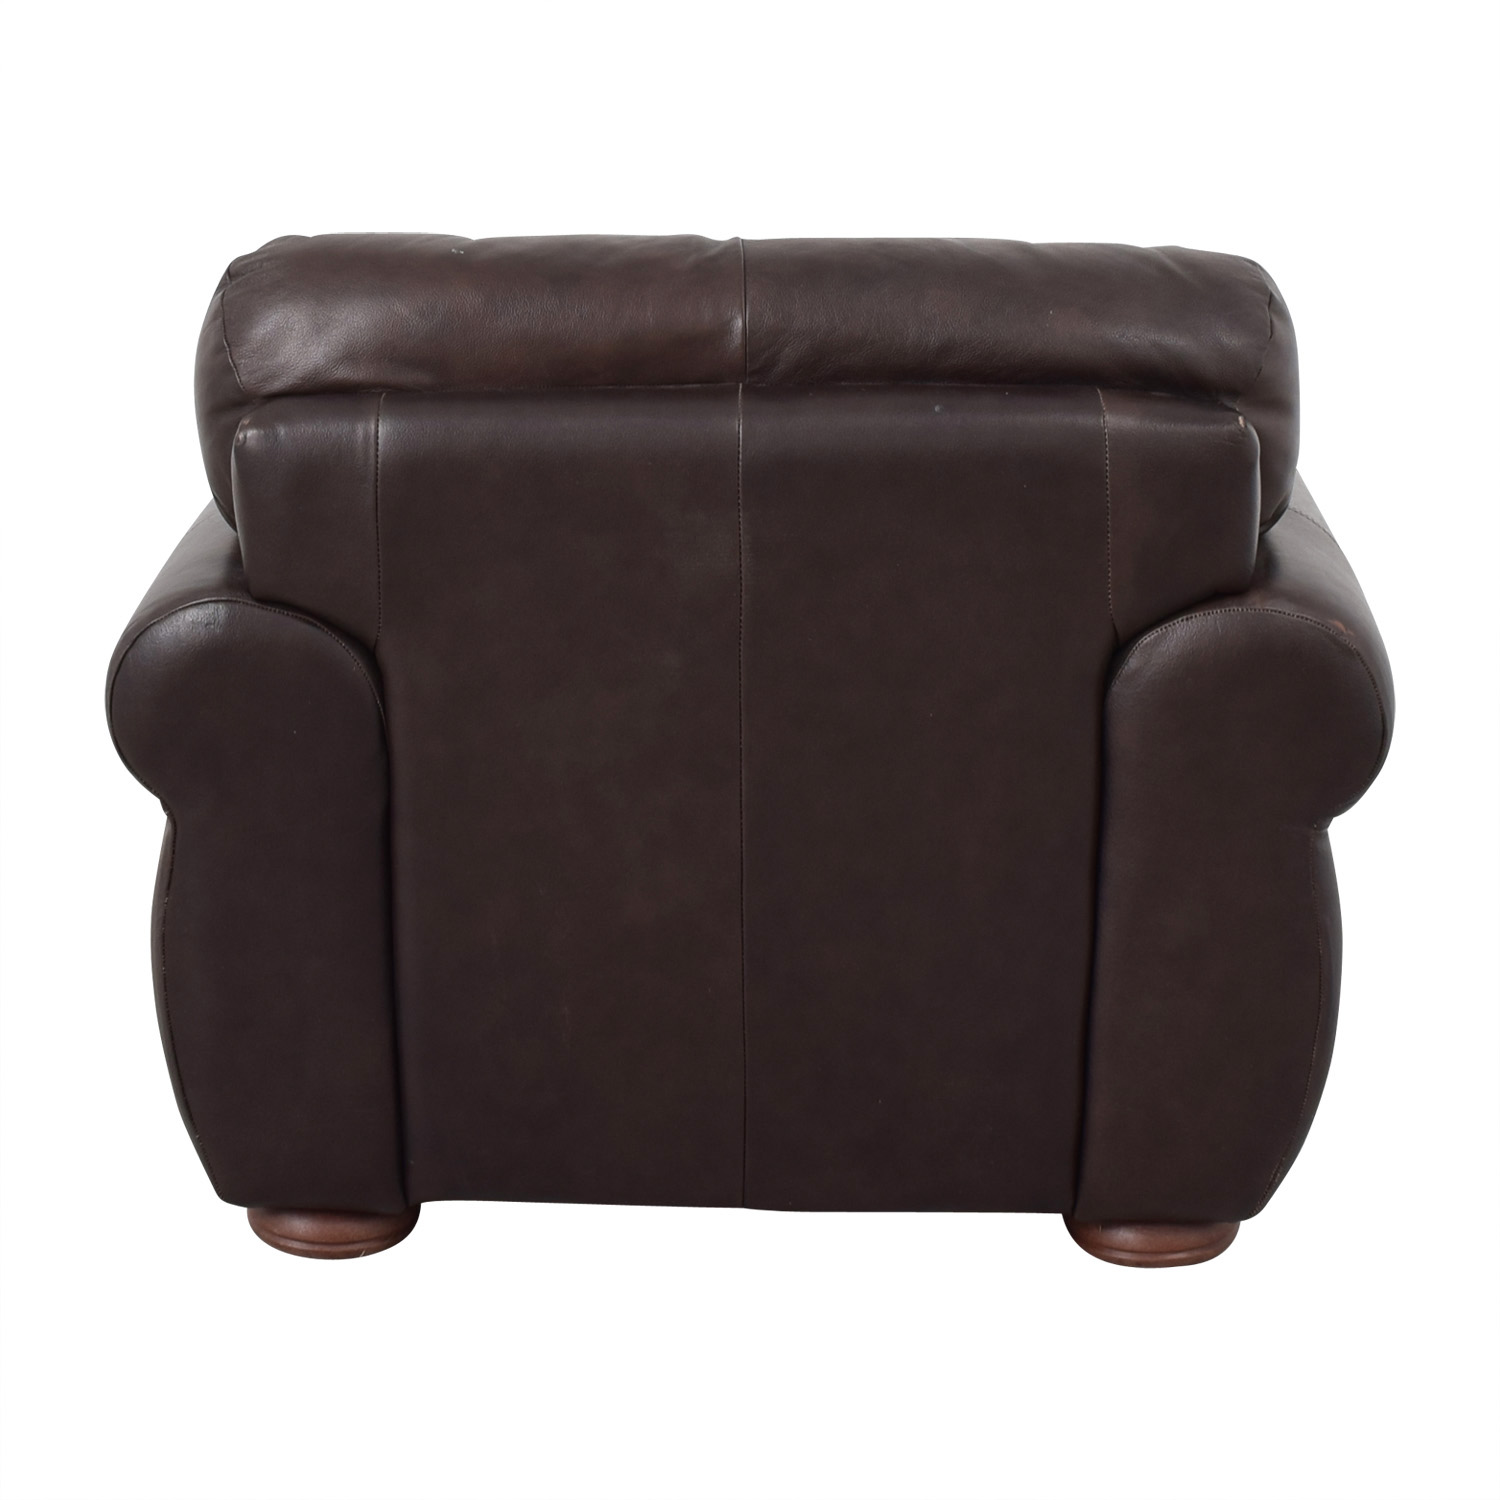 brown accent chairs bone collector chair 48 off jennifer convertibles convertible armchair raymour flanigan and ottoman